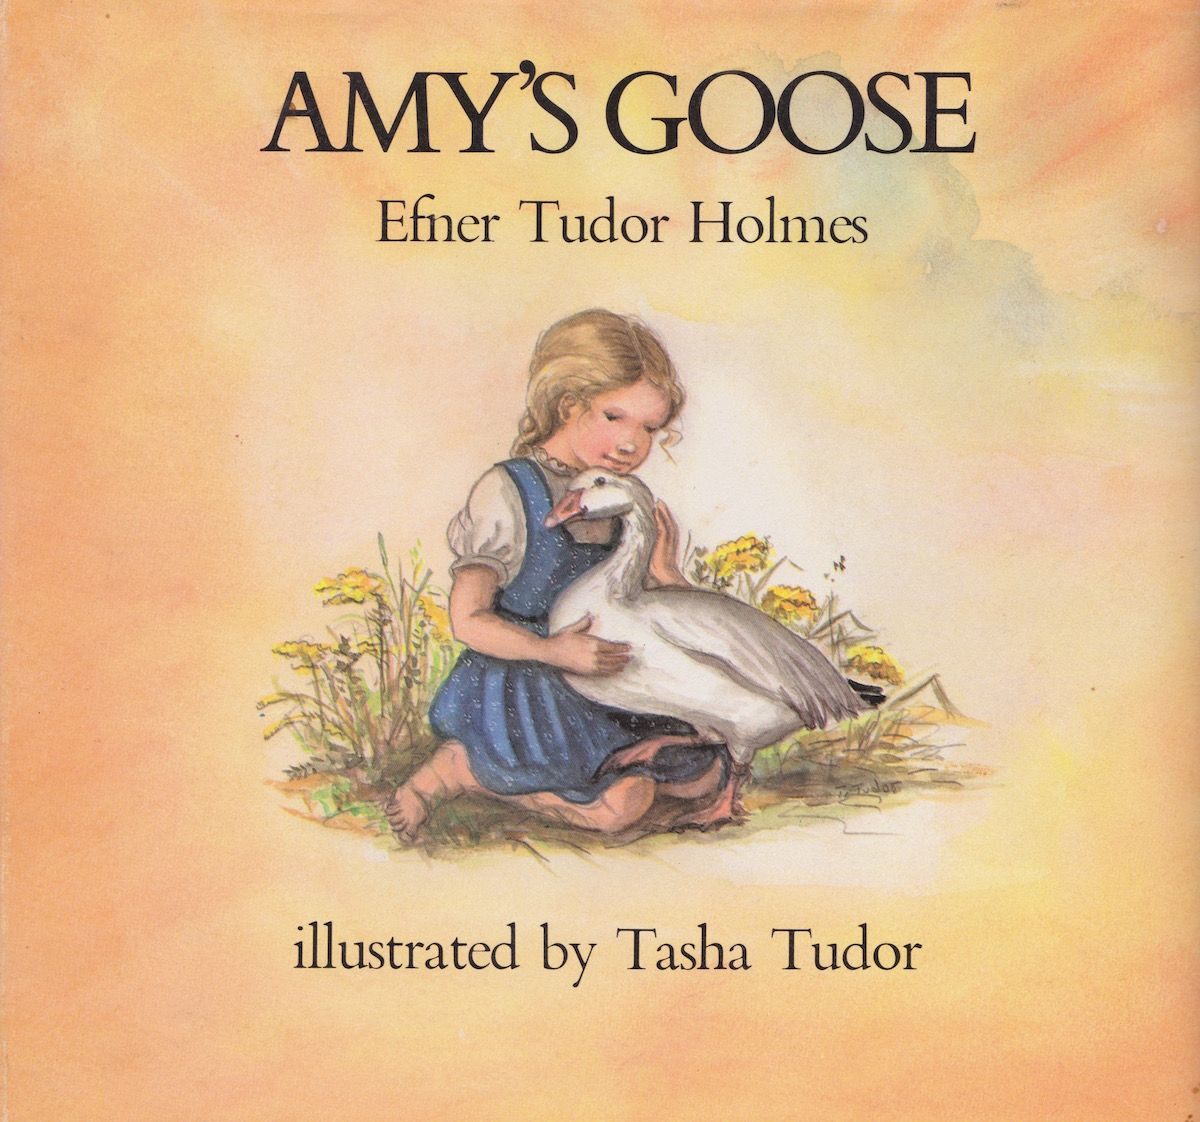 Amys-goose-cover